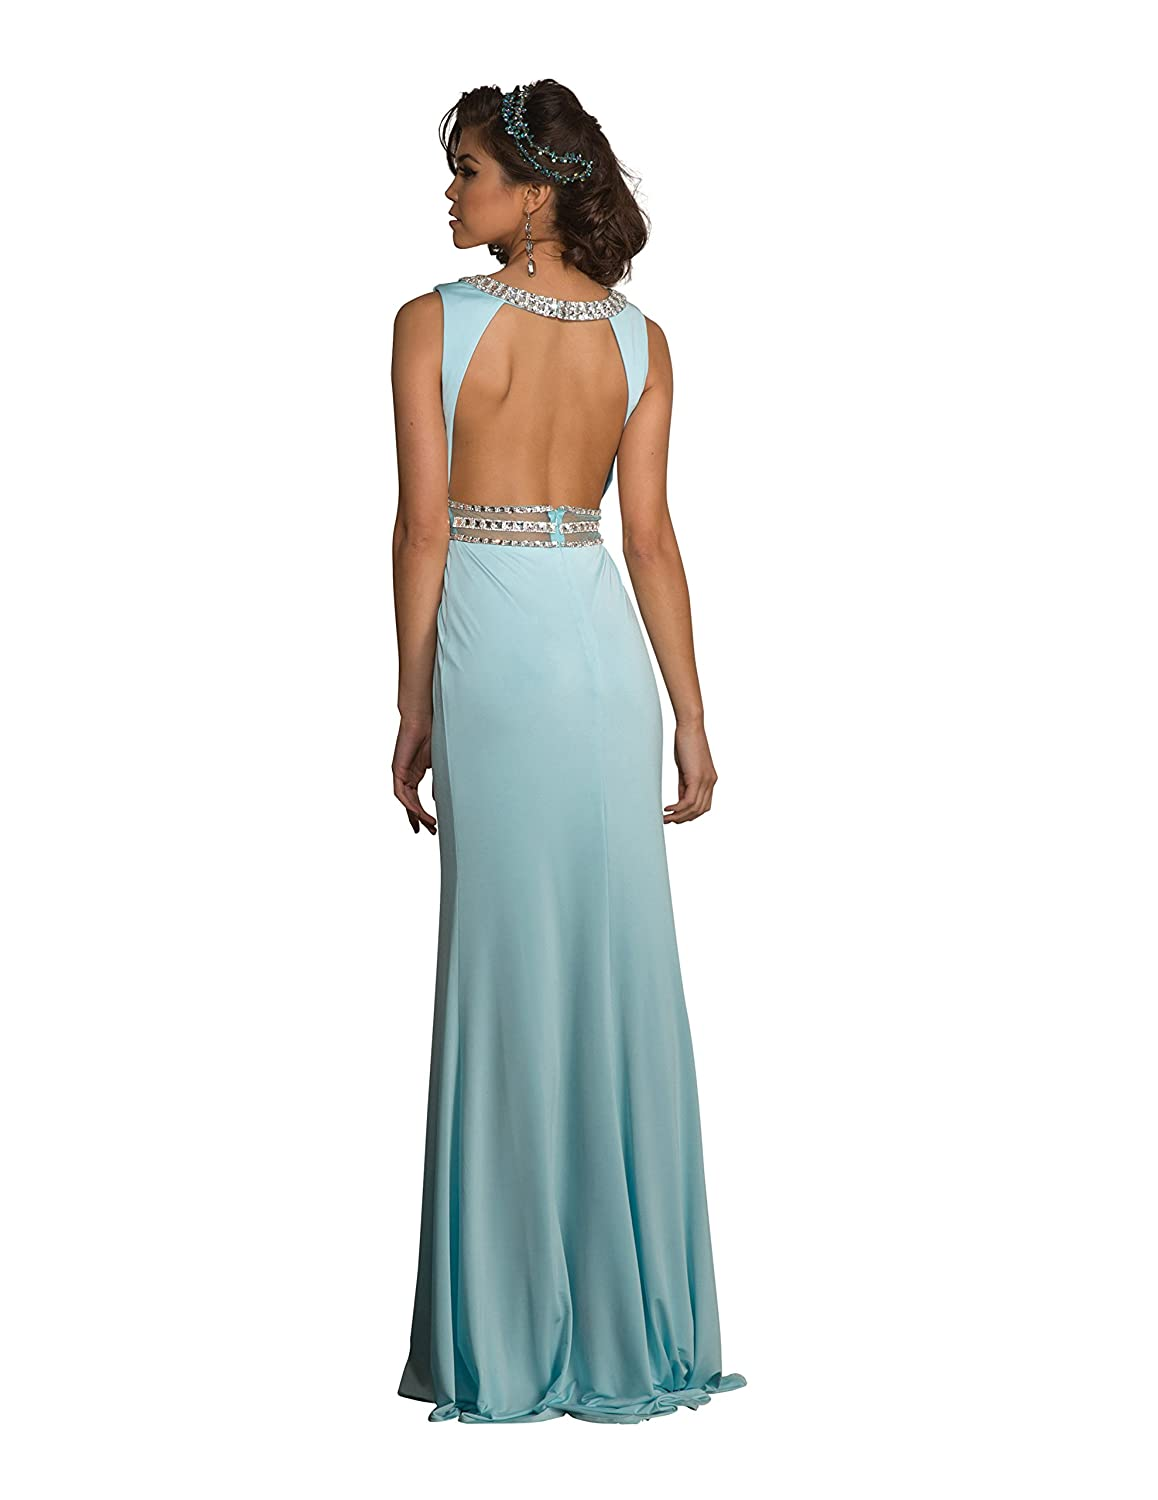 Amazon.com: Clarisse Womens Jeweled Prom Dress and Evening Gown 2601 Size 00 Blue: Clothing